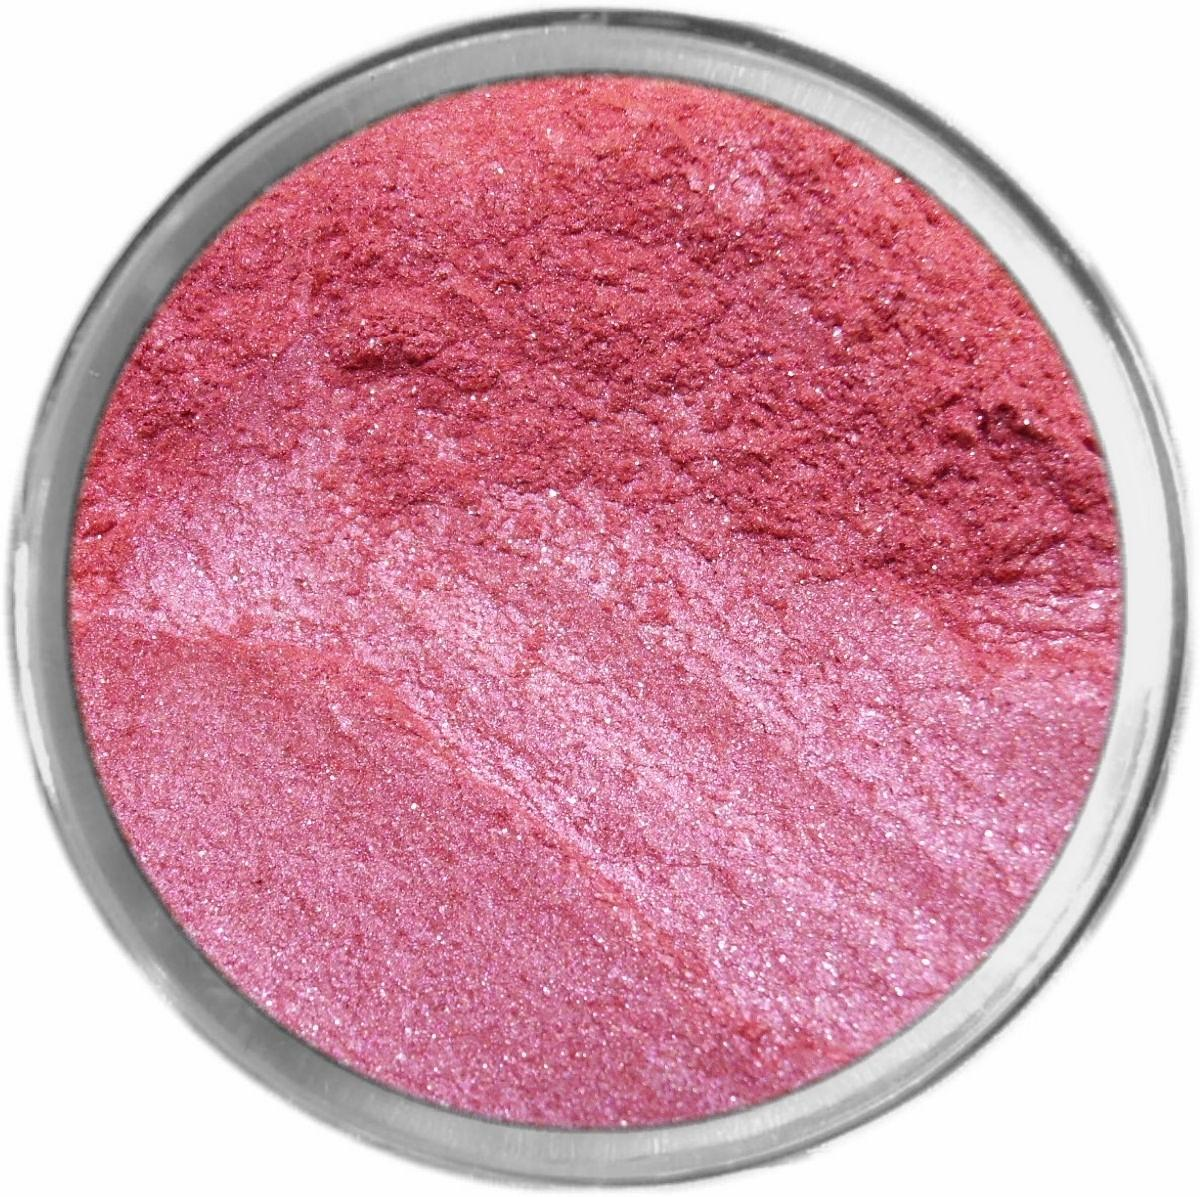 ABBY loose powder mineral multi-use color makeup bare earth pigment minerals